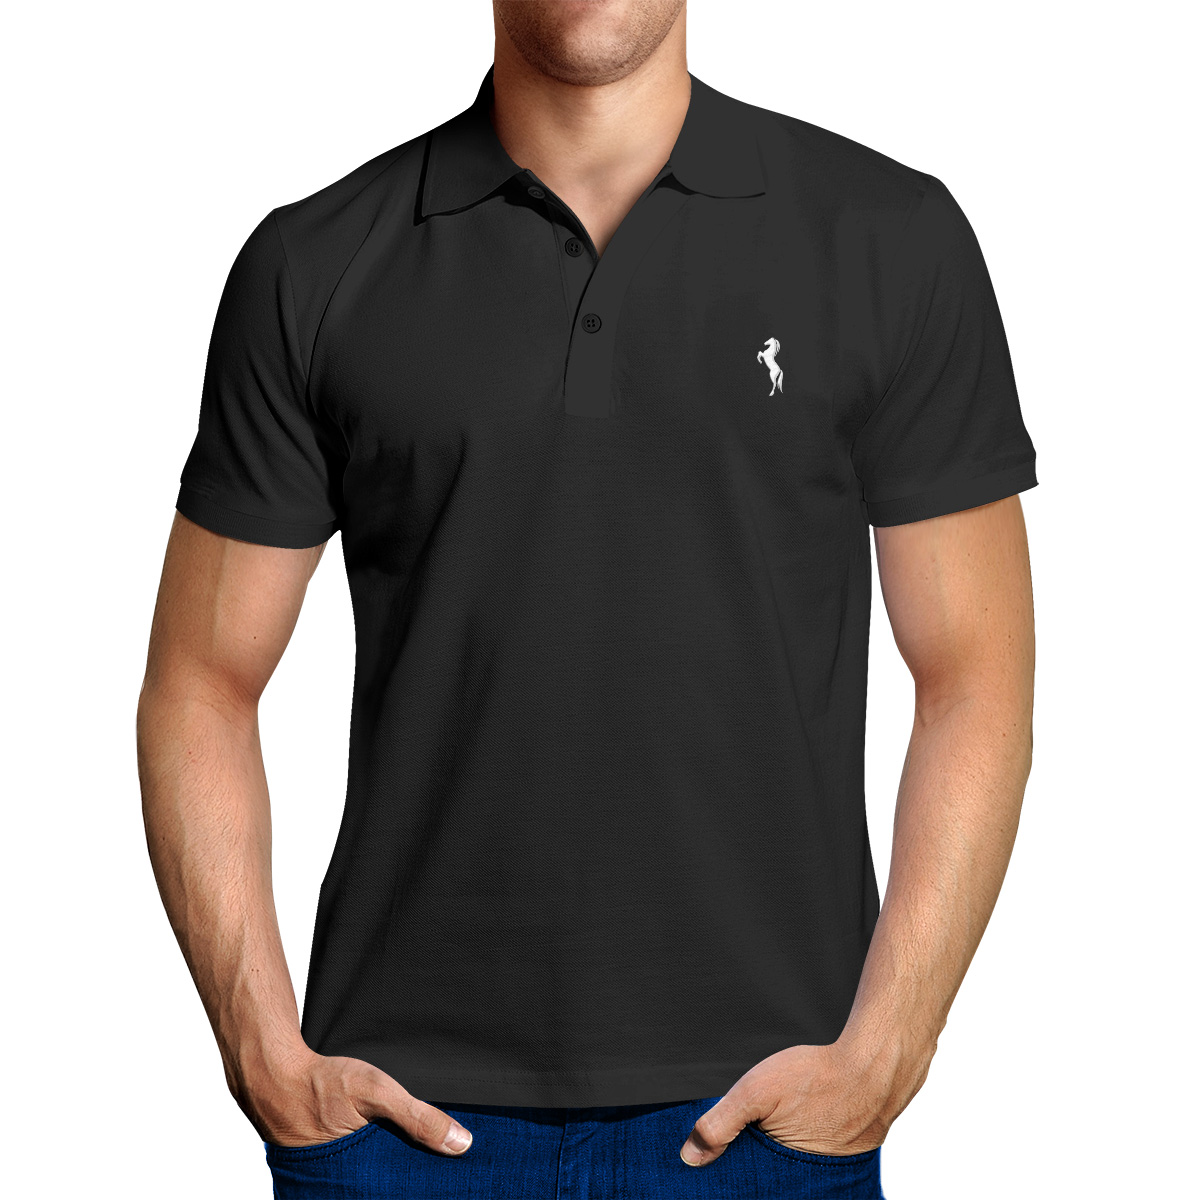 ENHARID CLASSIC POLO SHIRT FOR MEN, BLACK – Enharid